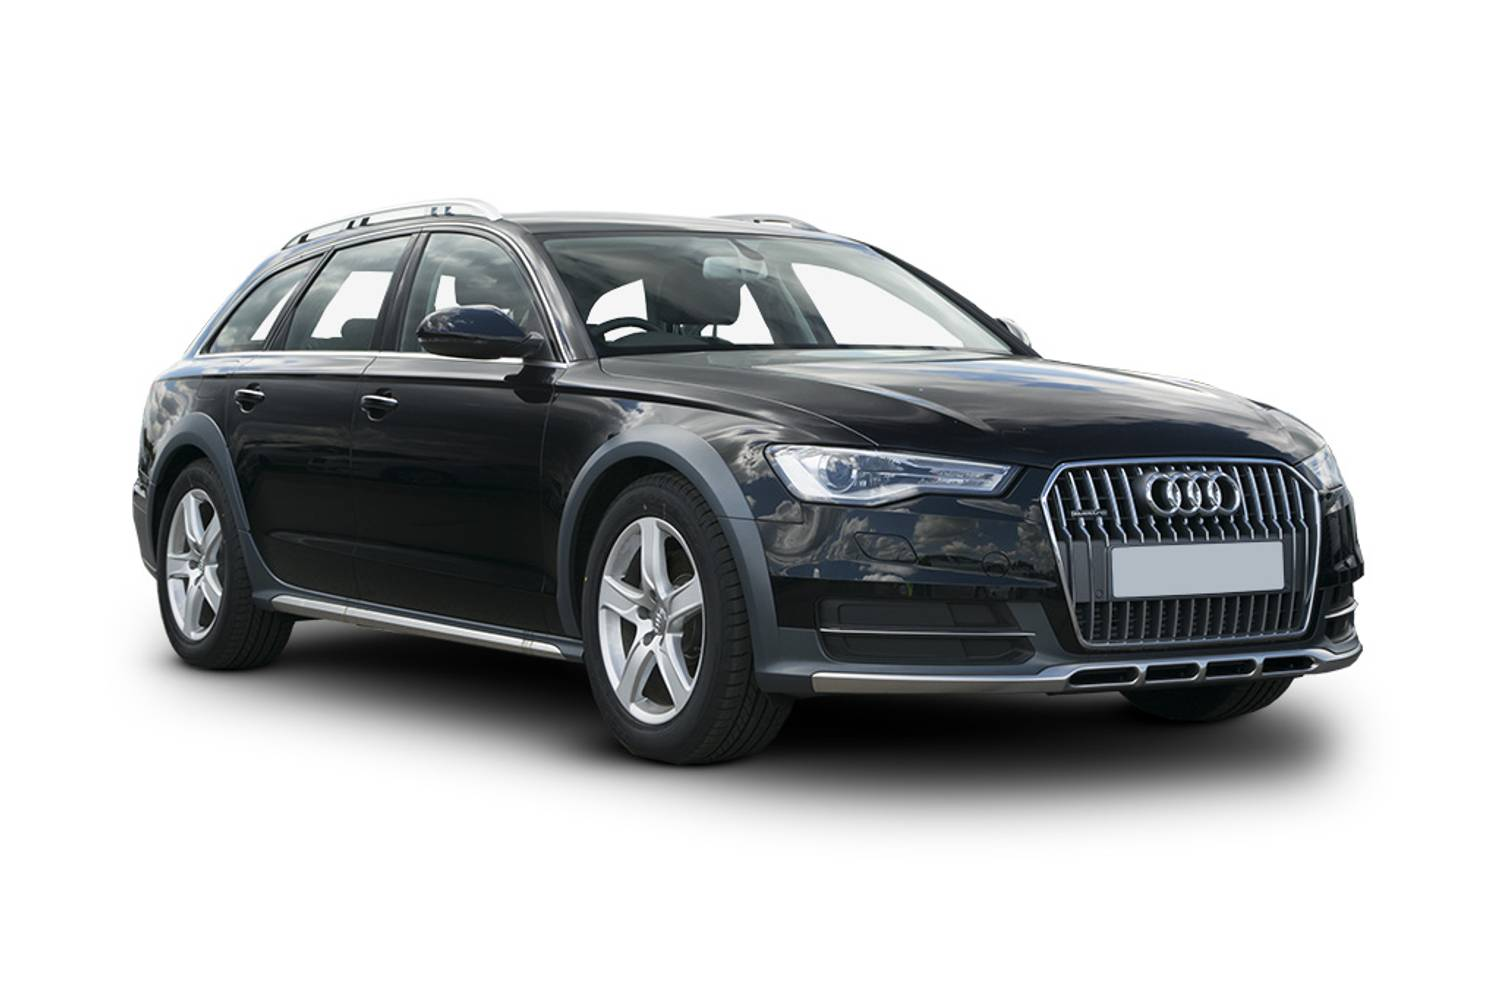 new audi a6 allroad diesel estate 3 0 tdi 272 ps quattro 5 door s tronic 2014 for sale. Black Bedroom Furniture Sets. Home Design Ideas